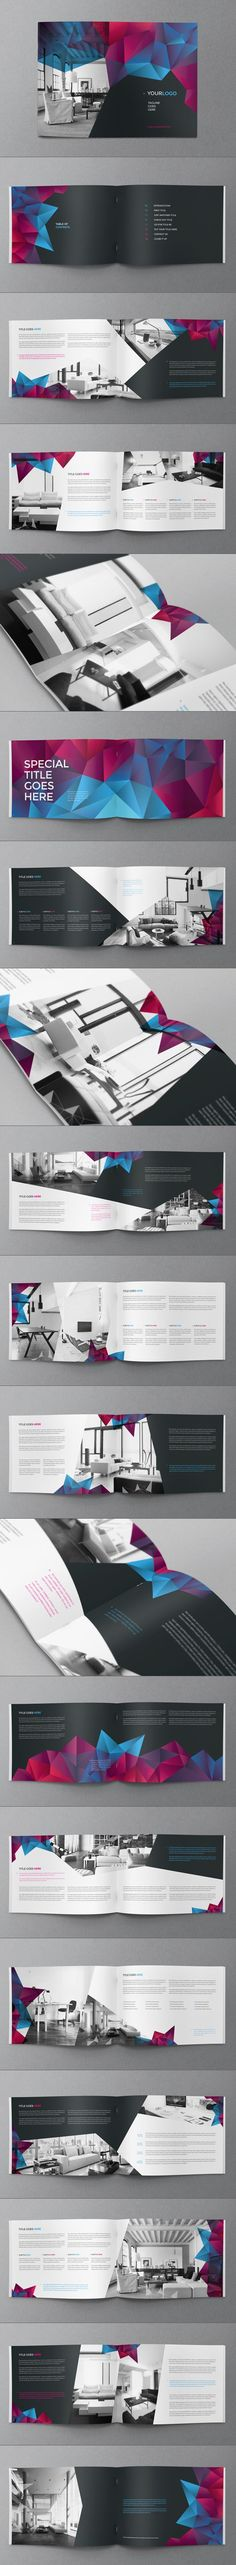 Cool Modern Brochure. Download here: http://graphicriver.net/item/cool-modern-brochure/7813777?ref=abradesign&utm_content=buffera0116&utm_medium=social&utm_source=pinterest.com&utm_campaign=buffer #brochure #design